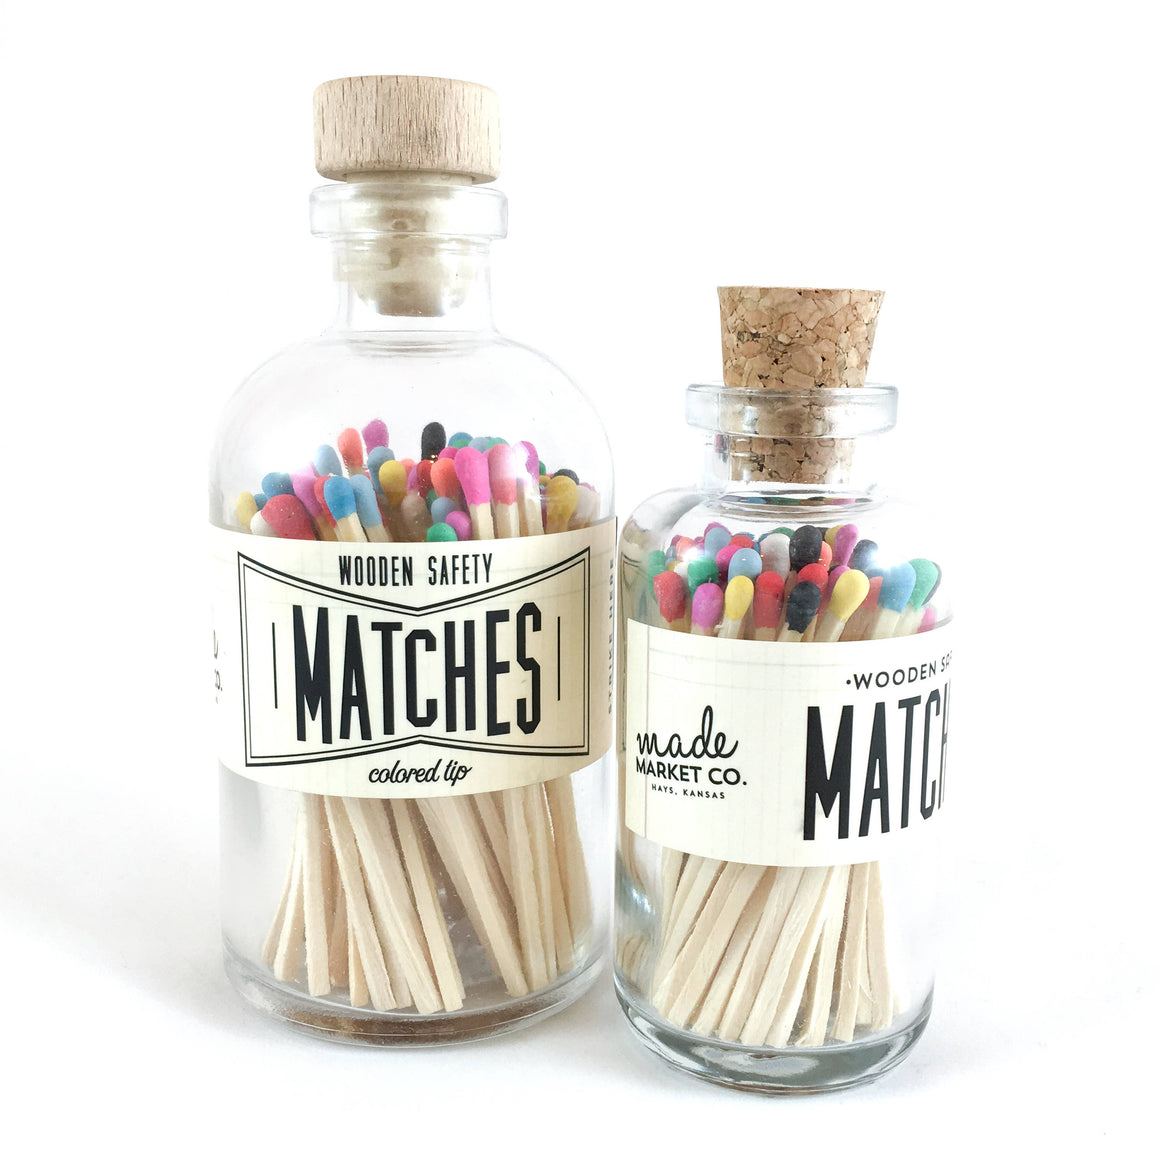 Made Market Co. - Variety Vintage Apothecary Matches